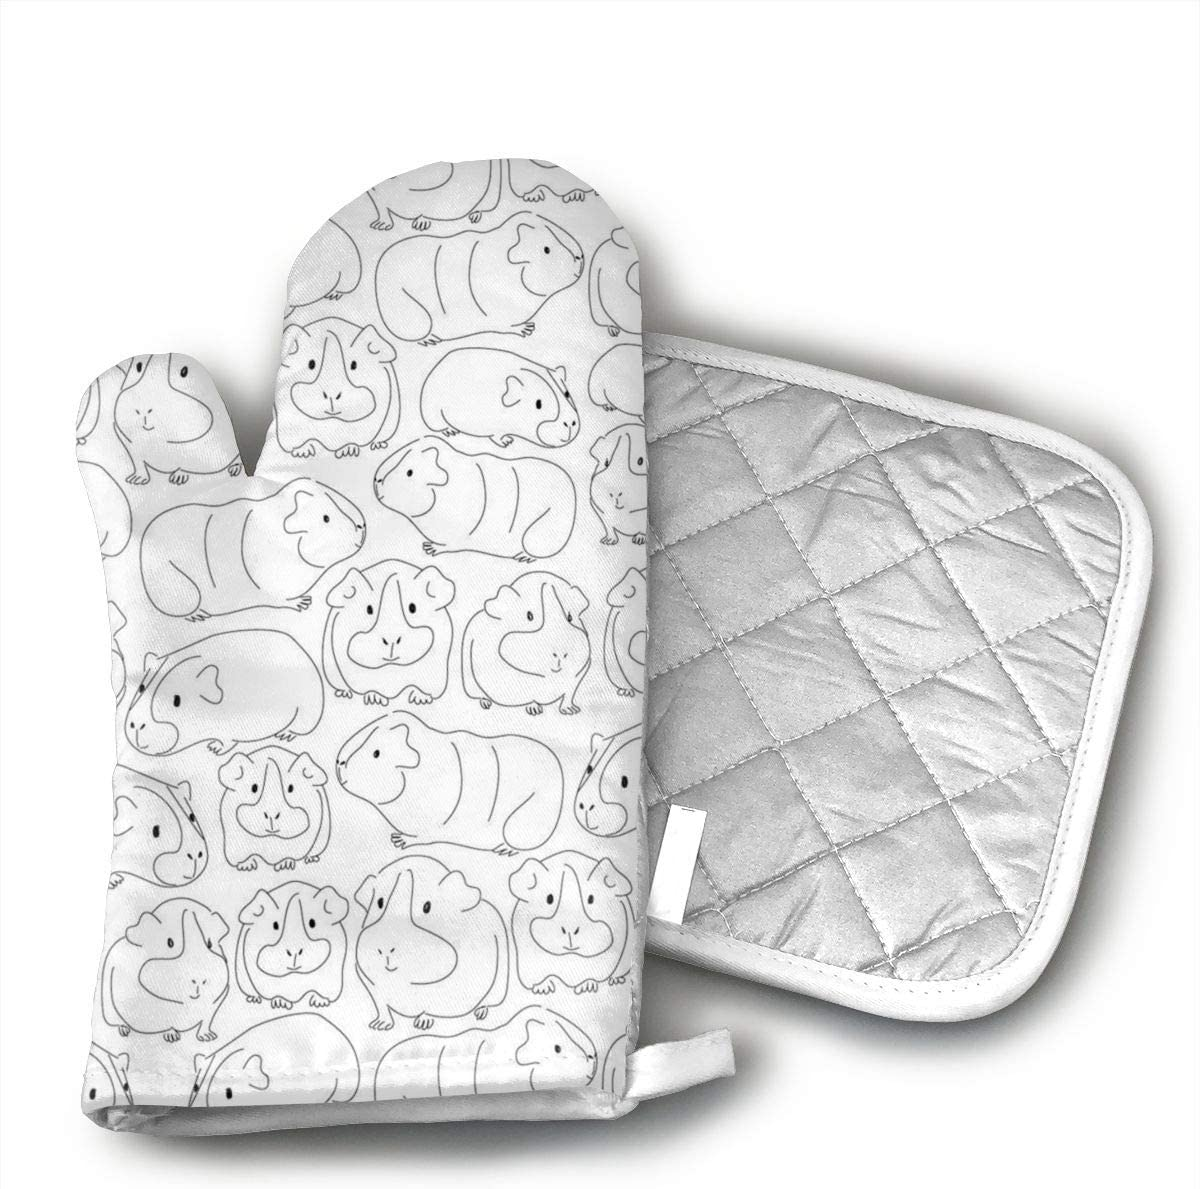 Teuwia Sketchy Guinea Pigs Oven Mitts and Pot Holders Baking Oven Gloves Hot Pads Set Heat Resistant for Finger Hand Wrist Protection